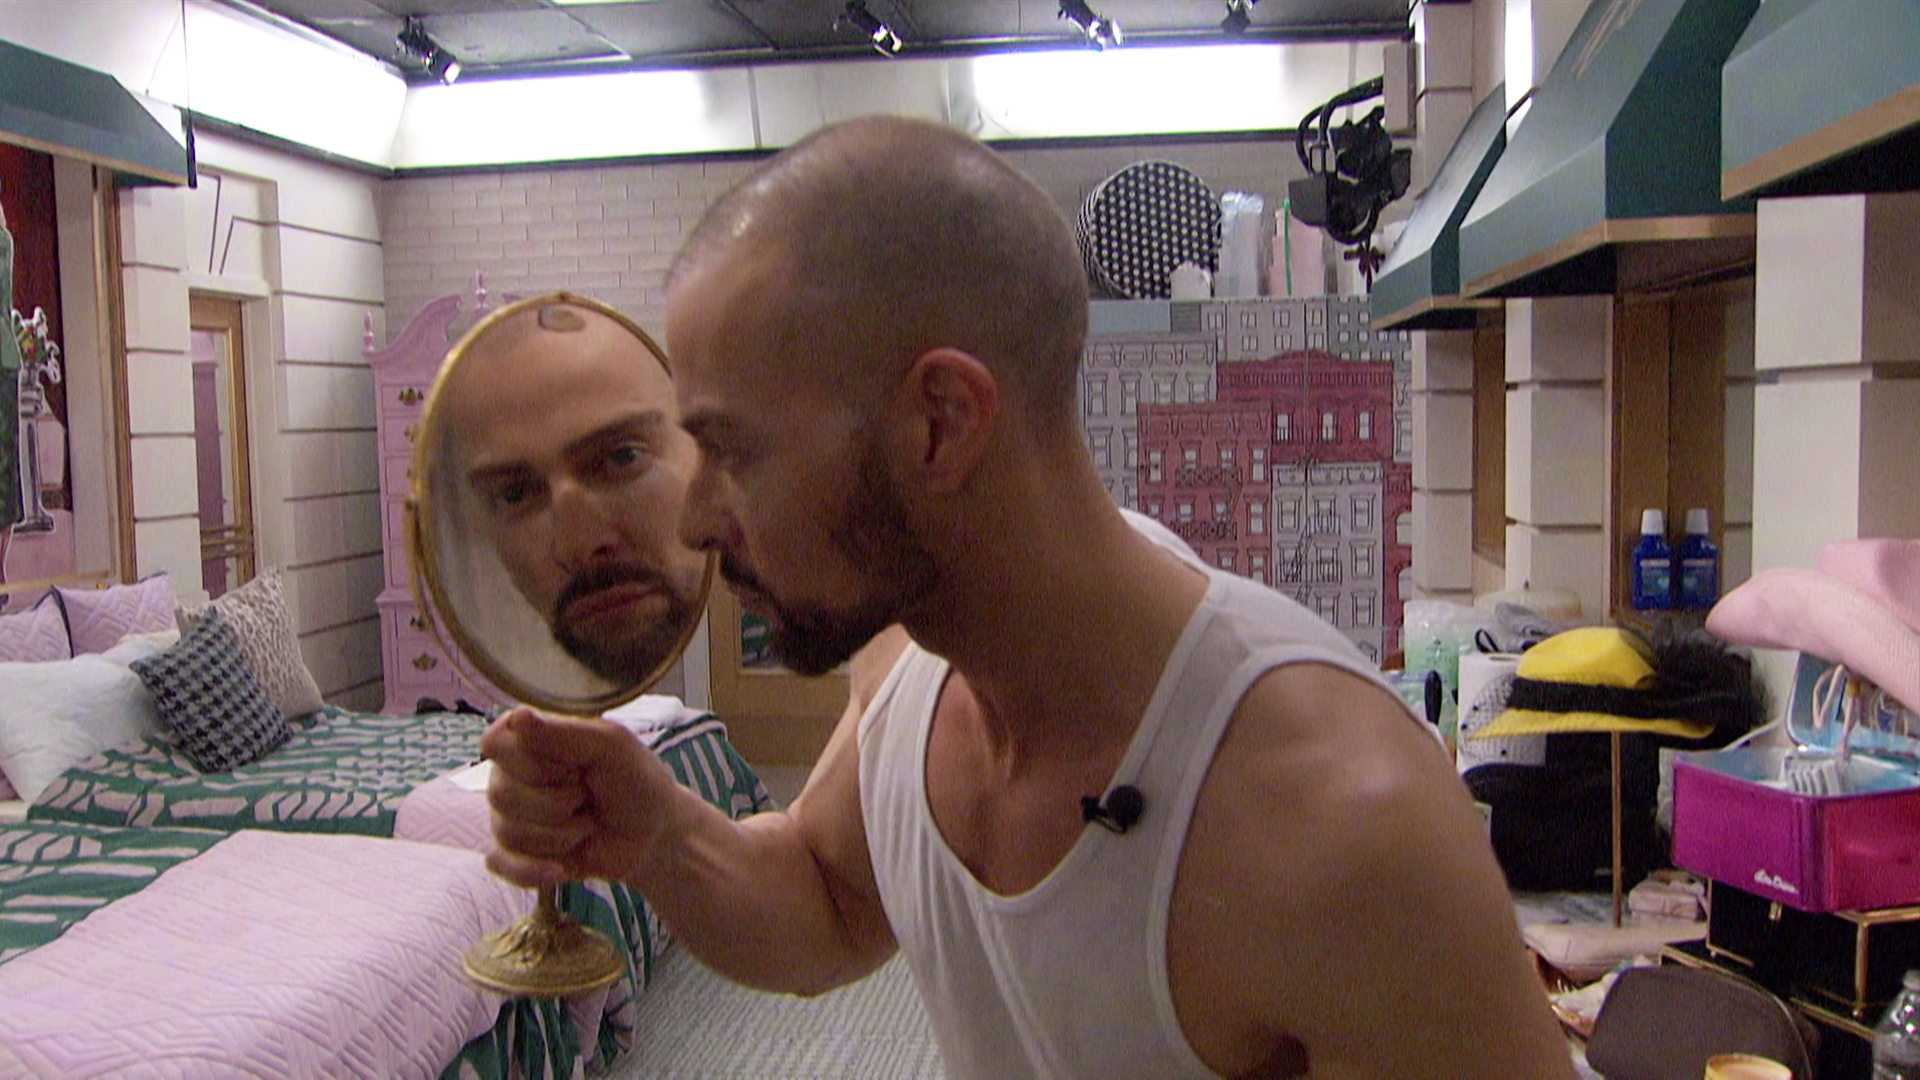 Watch Celebrity Big Brother Season 2 Episode 4: Episode 4 - Full show on  CBS All Access